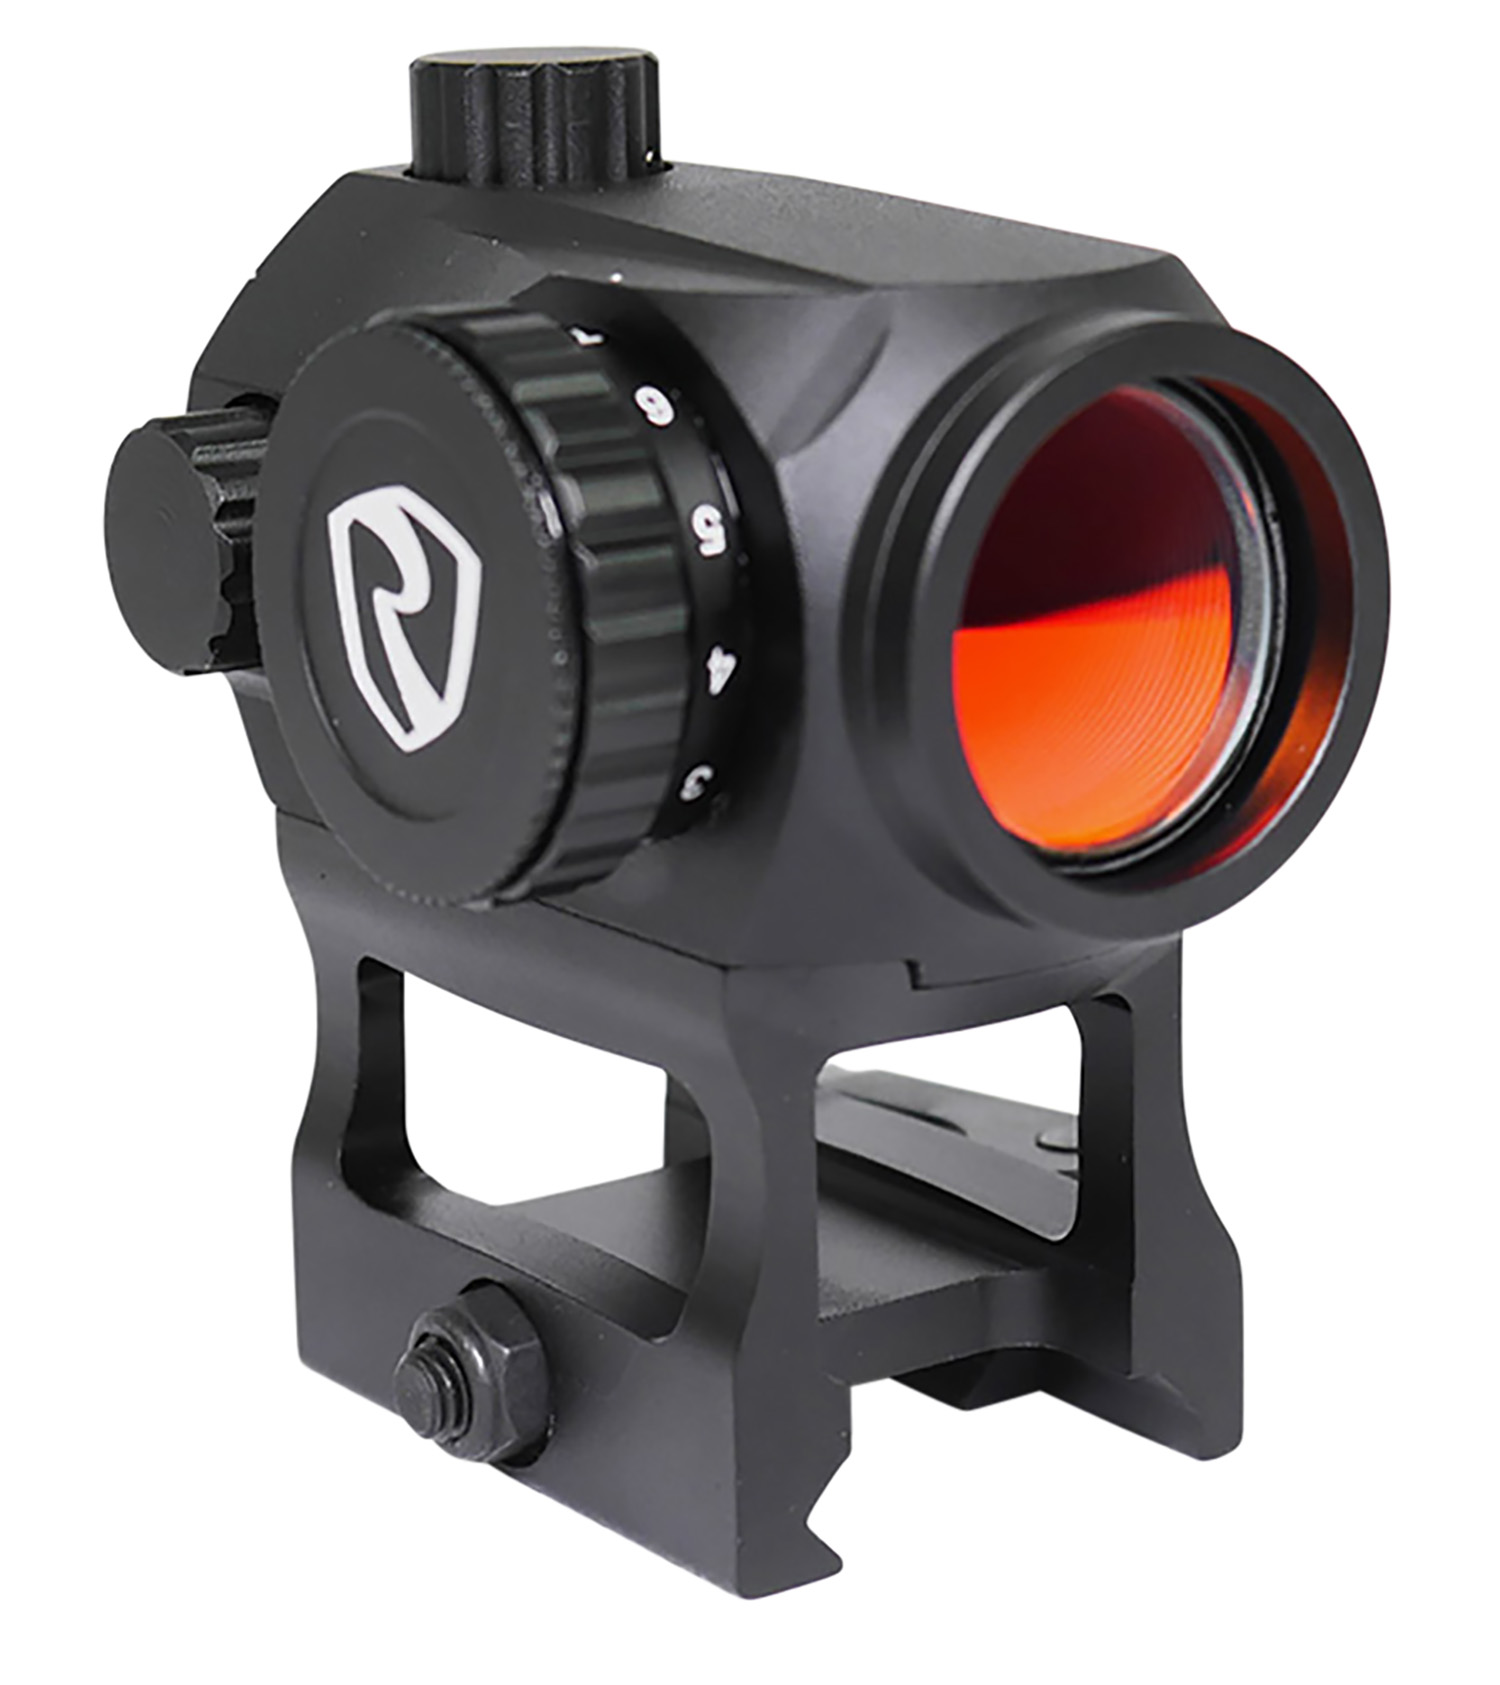 Riton Optics  X1 Tactix 1x 23mm 2 MOA Illuminated Red Dot Black